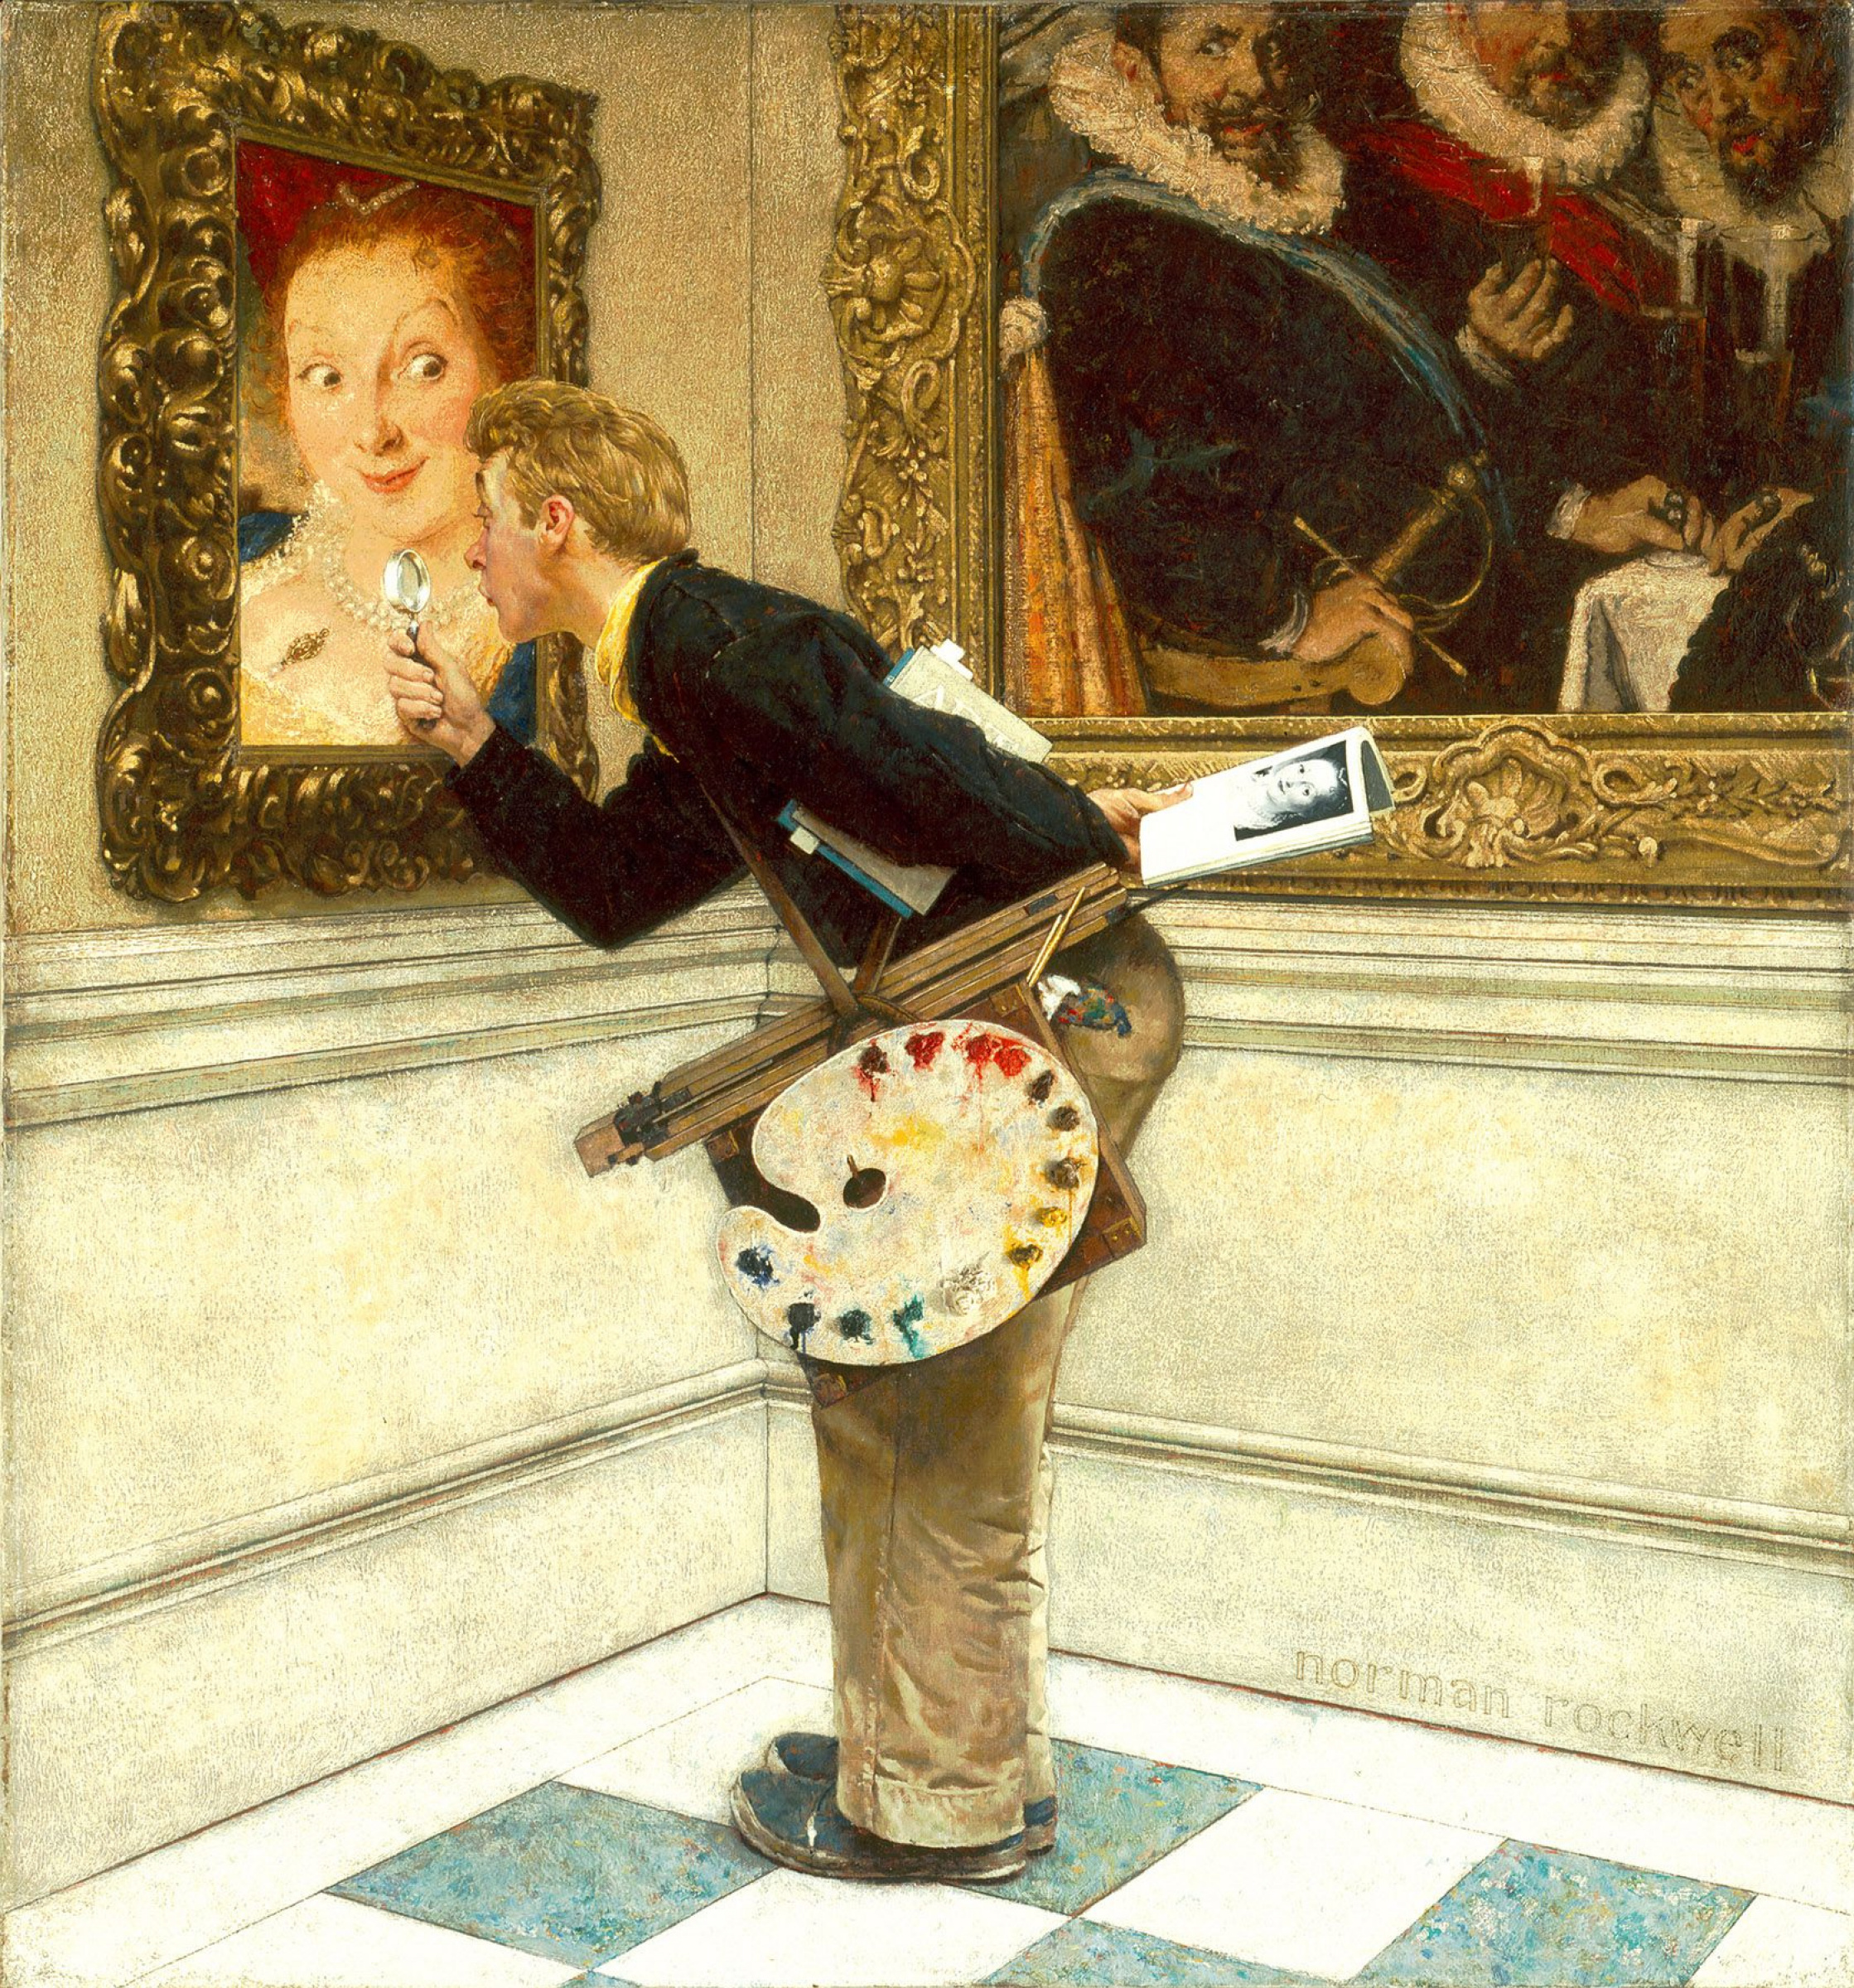 The Art Critic by Norman Rockwell, 1955